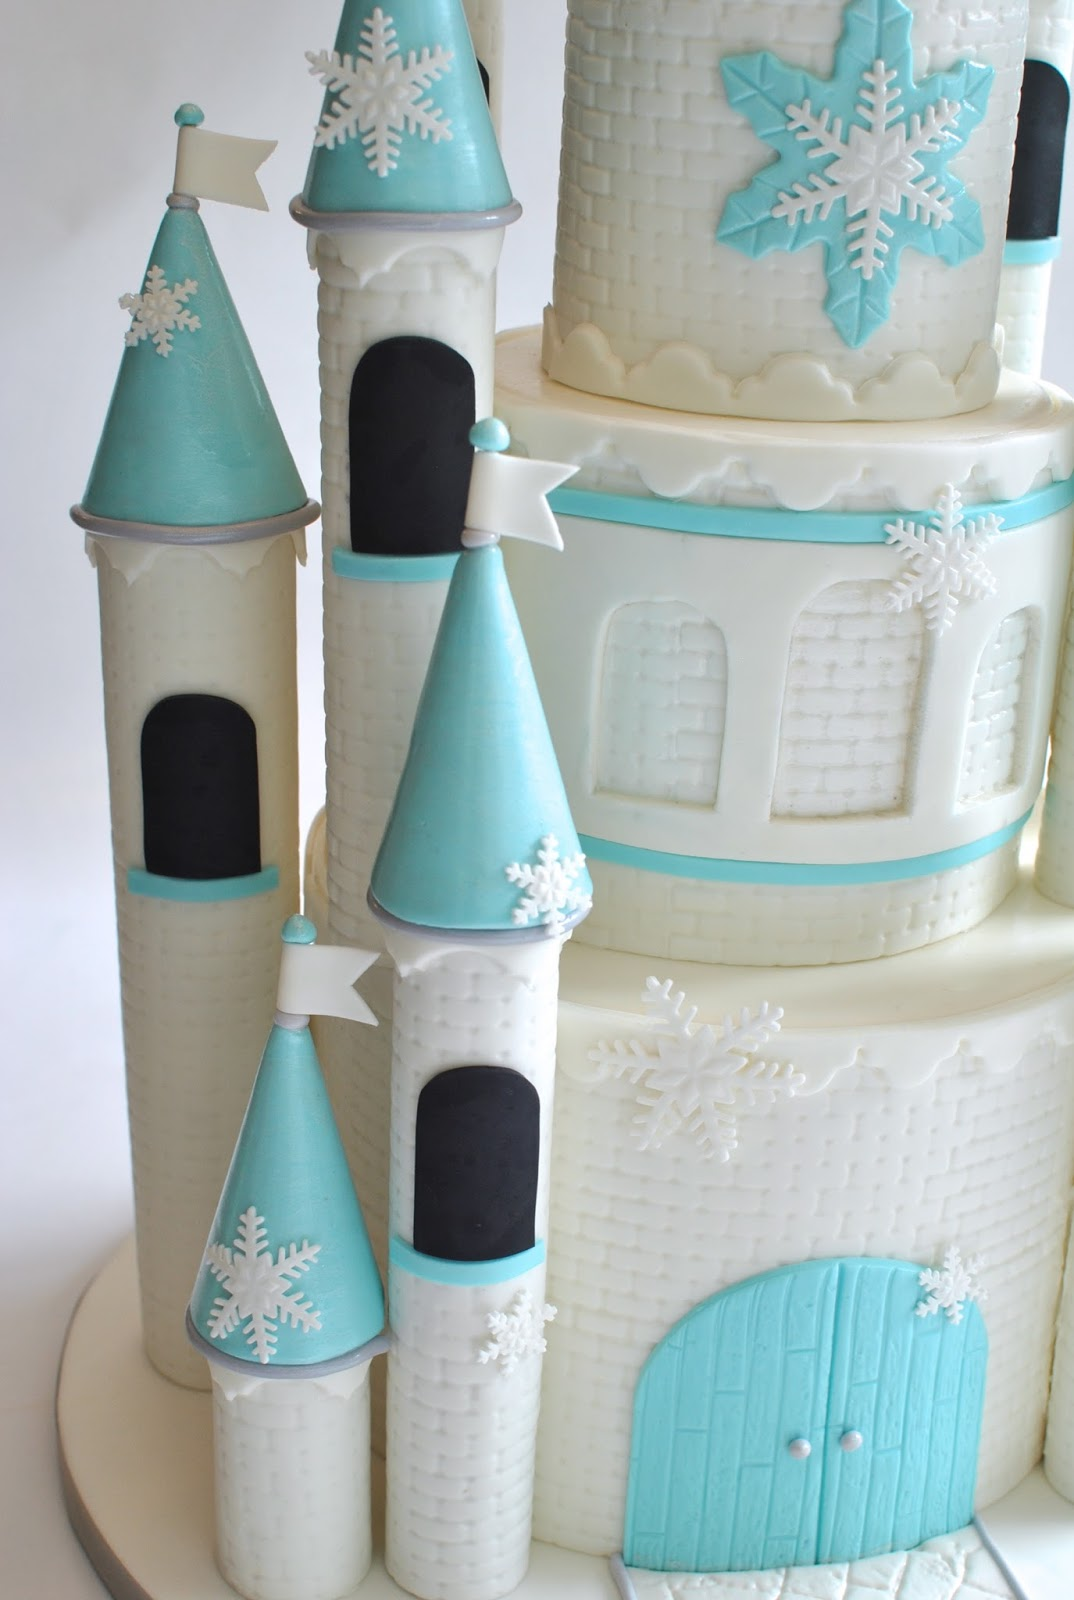 How Do You Make The Towers On A Castle Cake